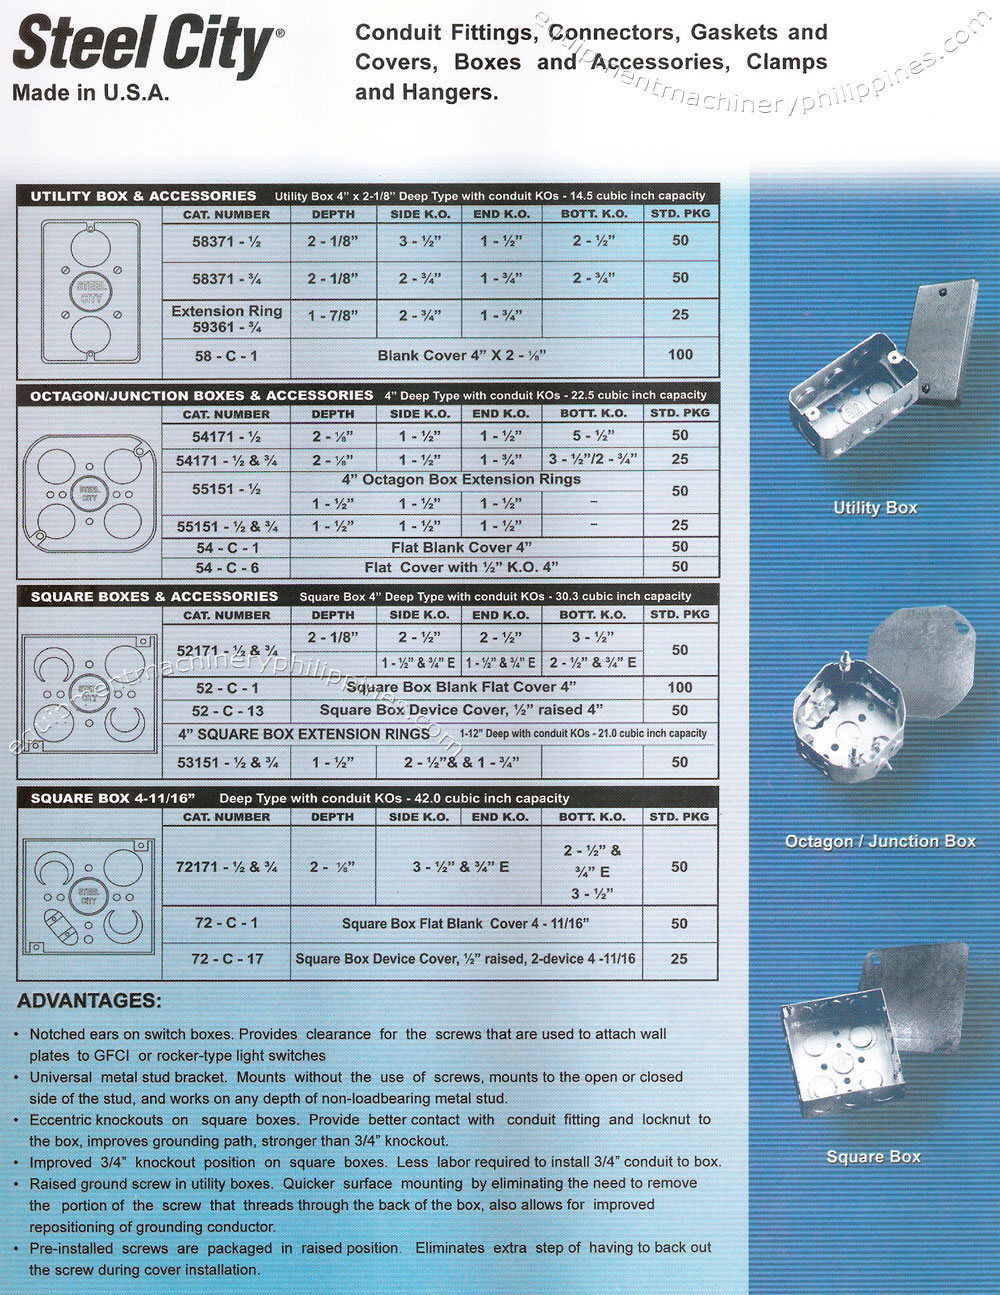 Steel City Conduit Fittings Connectors Gaskets And